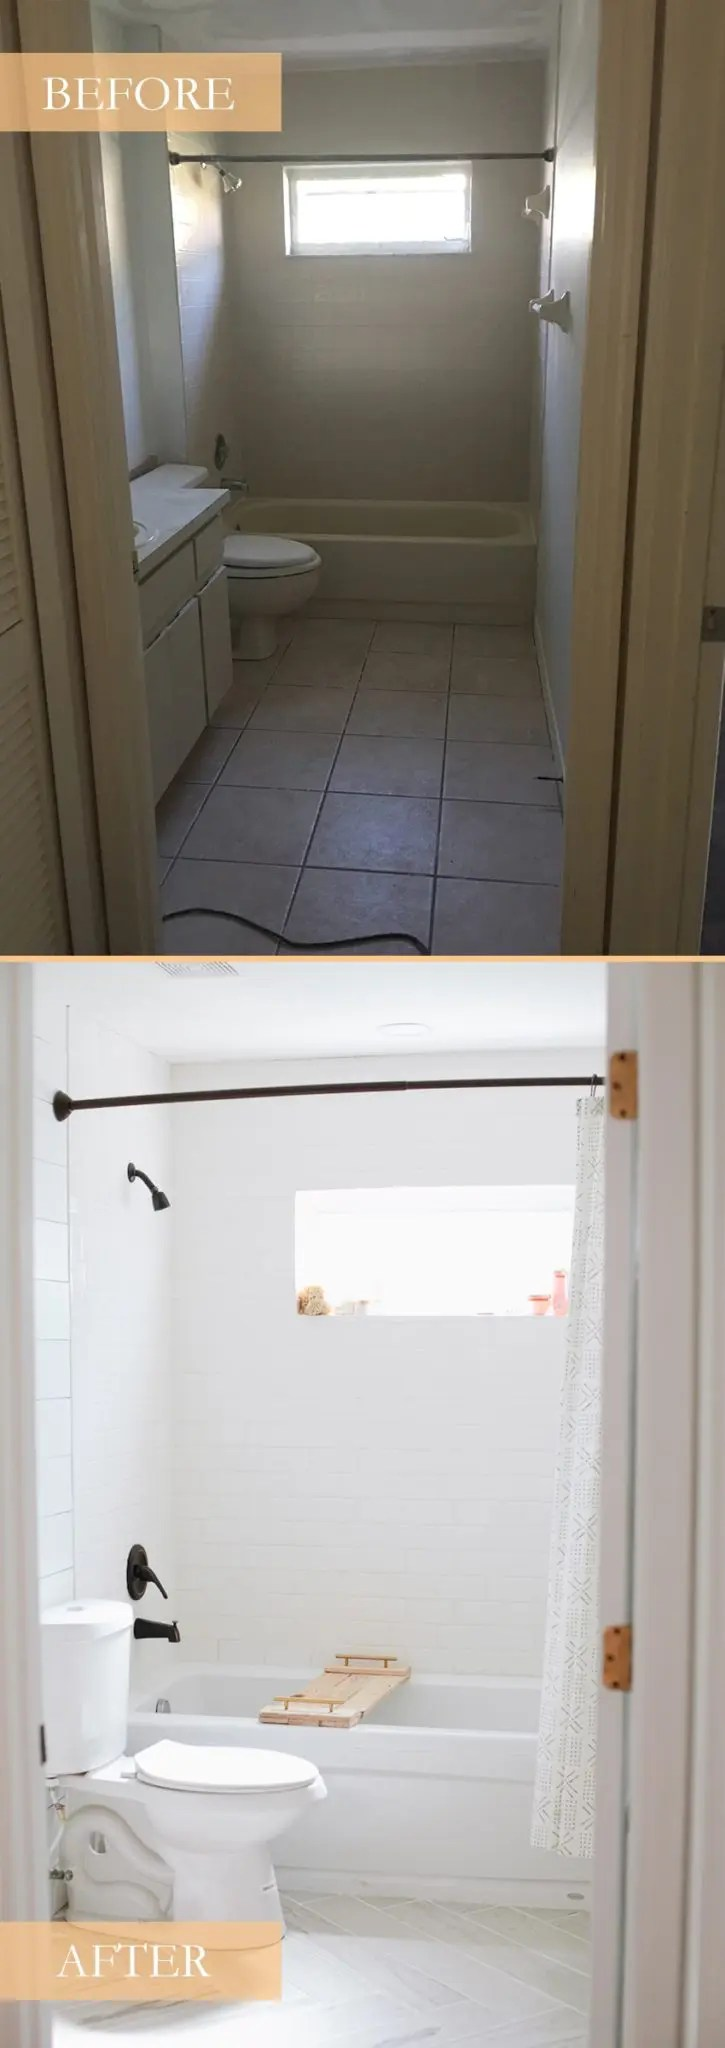 https://i2.wp.com/freshmommyblog.com/wp-content/uploads/2017/08/BEFORE-AND-AFTER_main-bathroom.jpg?resize=850%2C2400